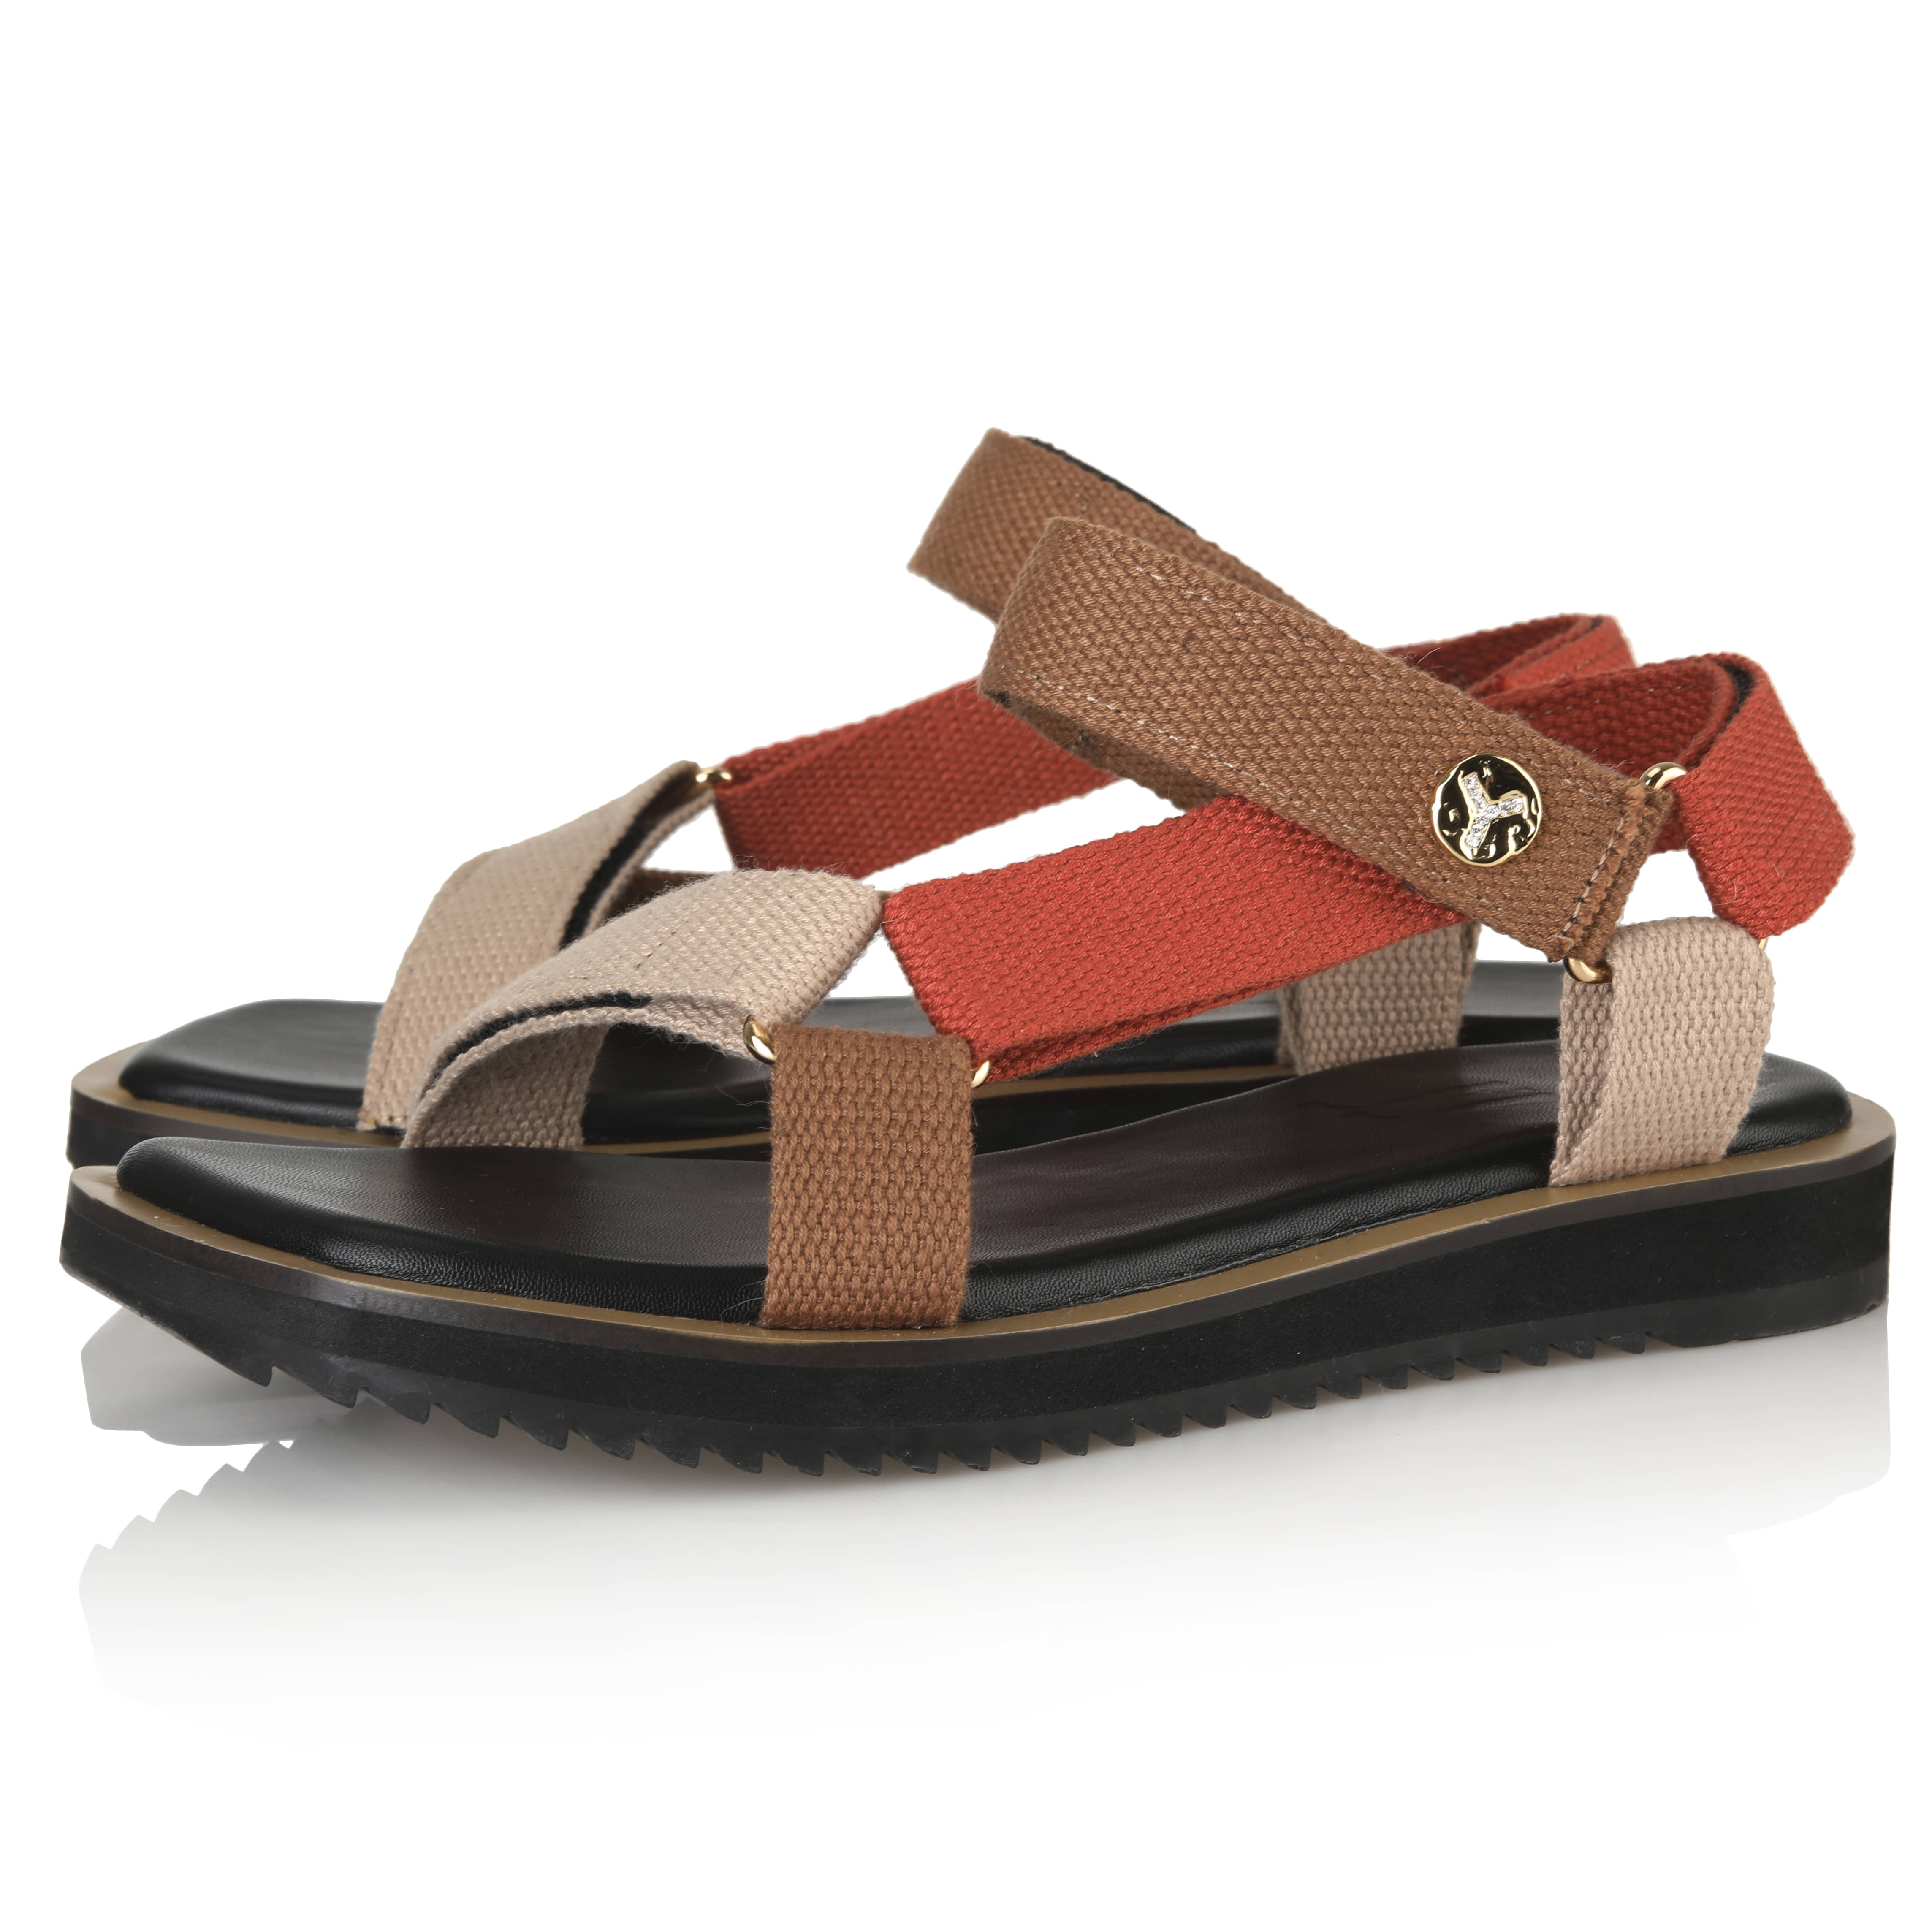 Y.02 Moly Strap sandals / BEIGE+ORANGE